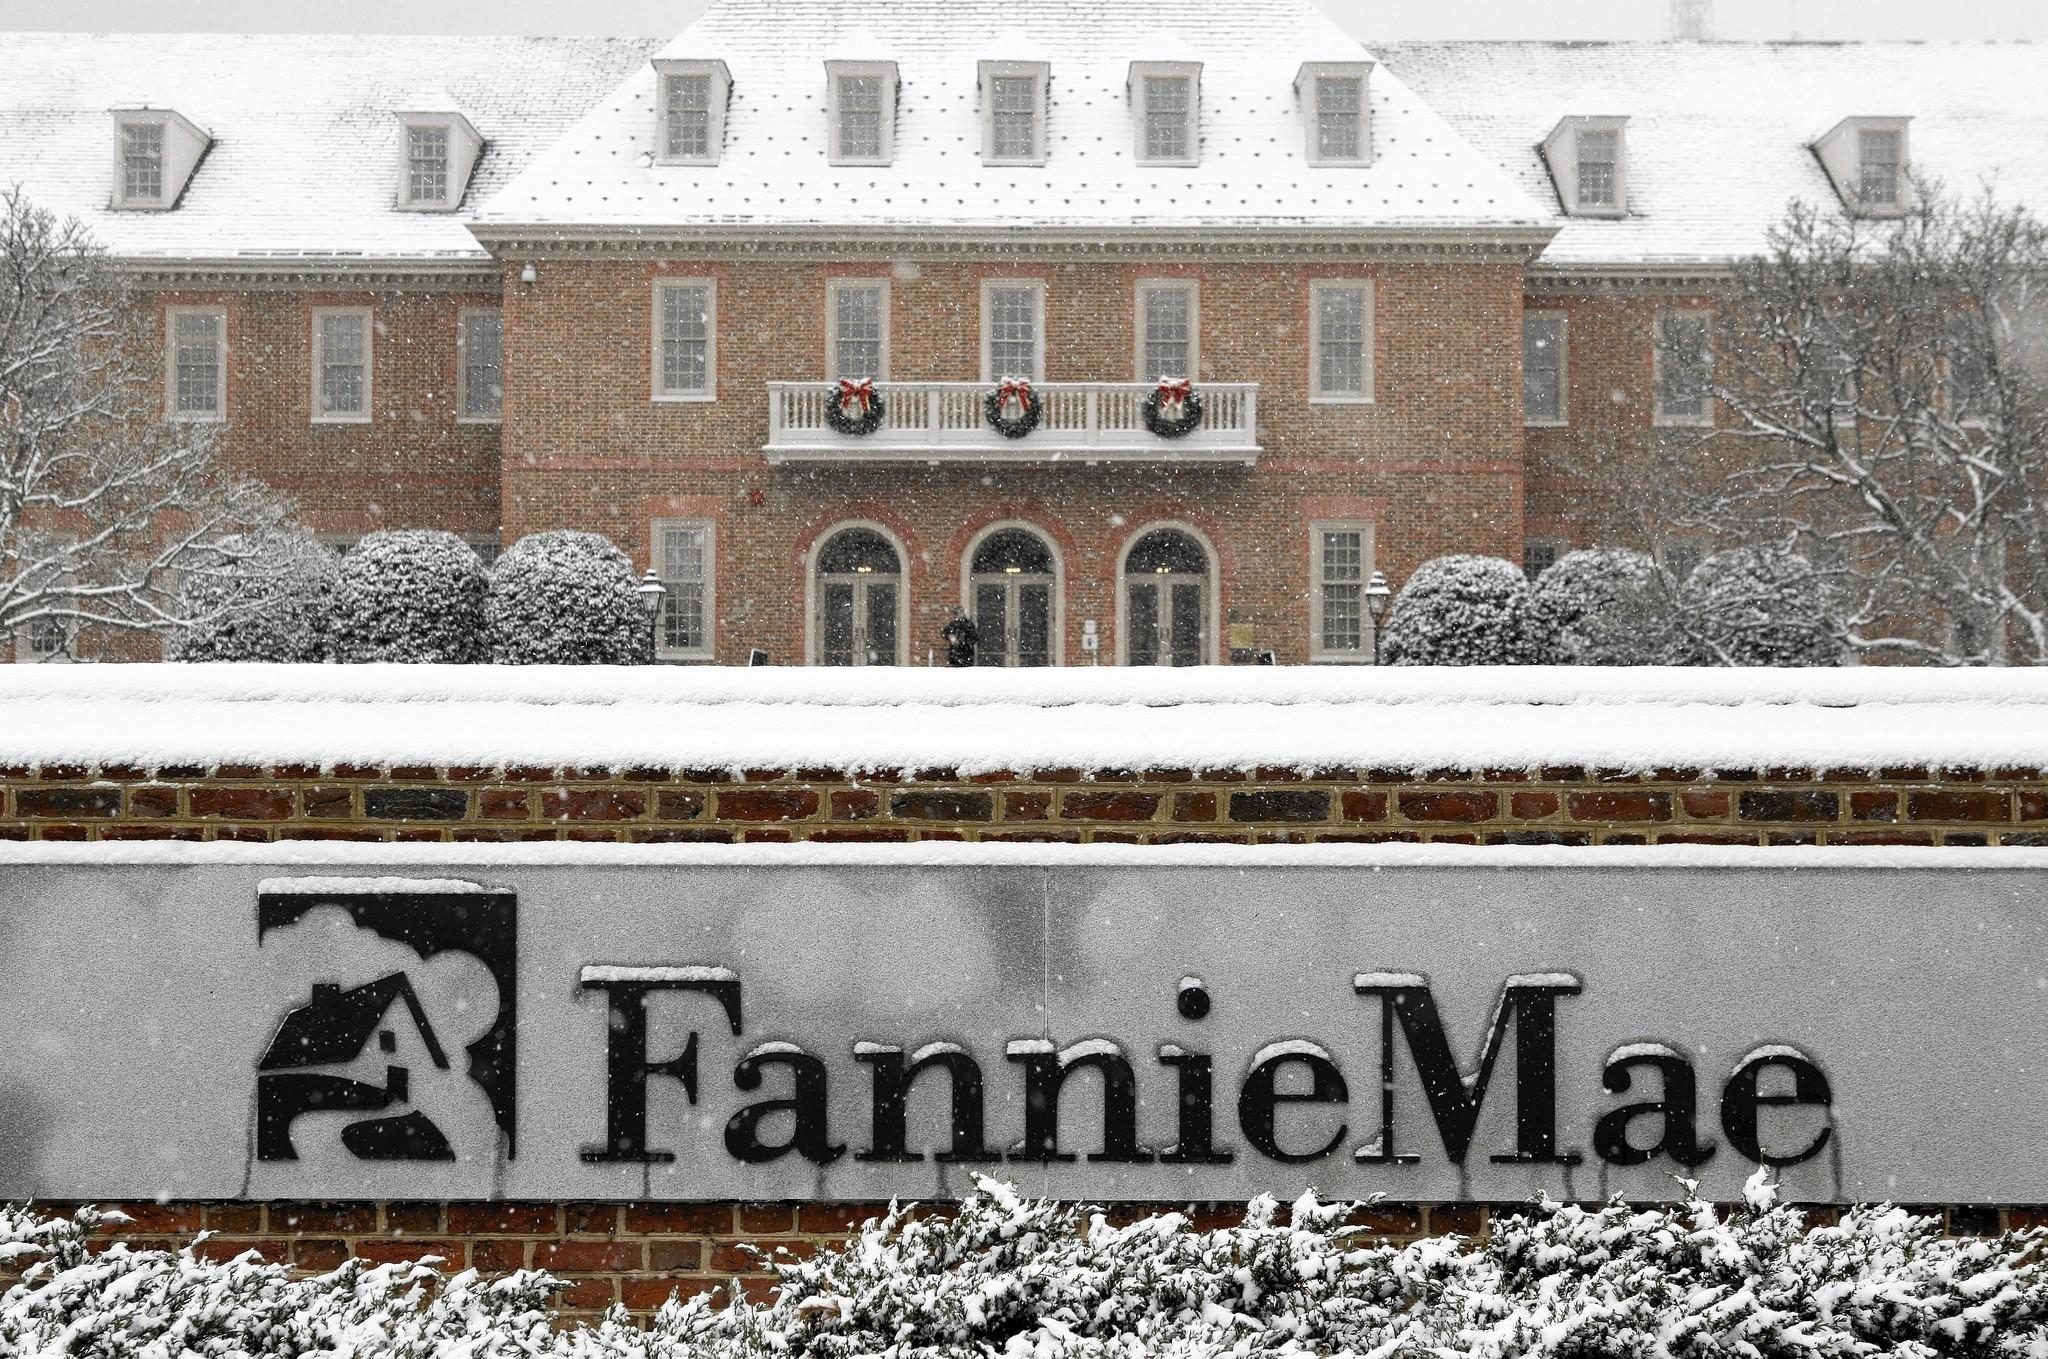 Fannie Mae and Freddie Mac, which together own or guarantee about 60% of existing mortgages, were seized by the federal government in 2008 as they neared bankruptcy from bad loans they guaranteed during the subprime housing boom.